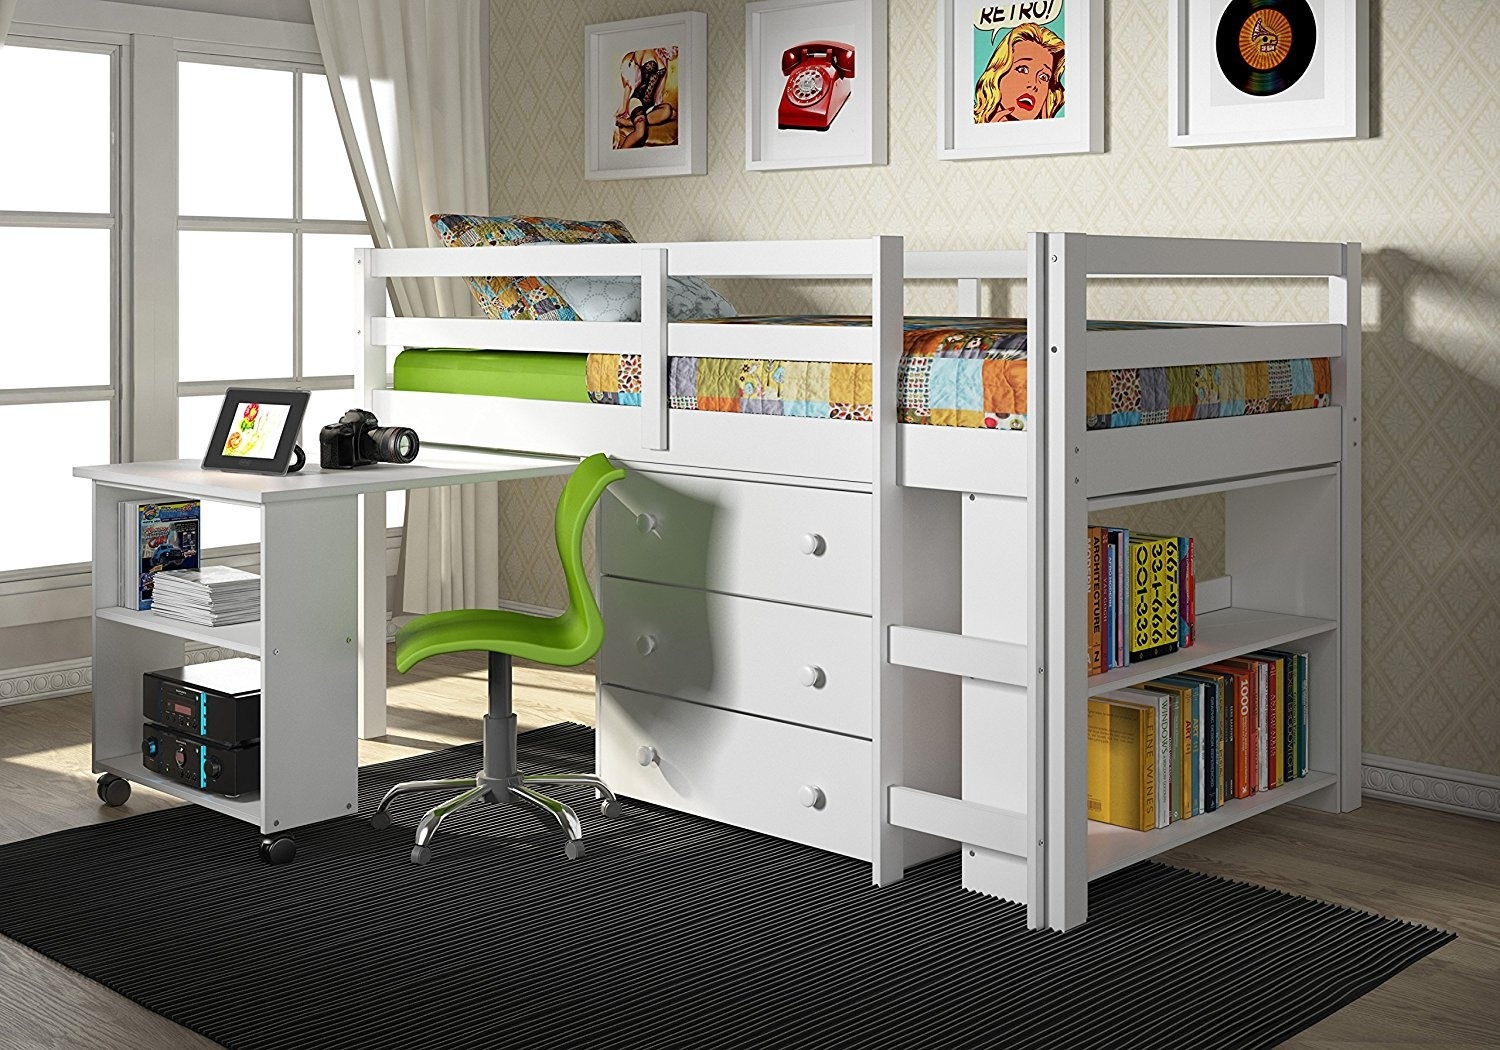 Picture of: Donco Kids 760 Cp Low Study Loft Bed Dark Cappuccino By Donco Kids Shop Online For Homeware In New Zealand